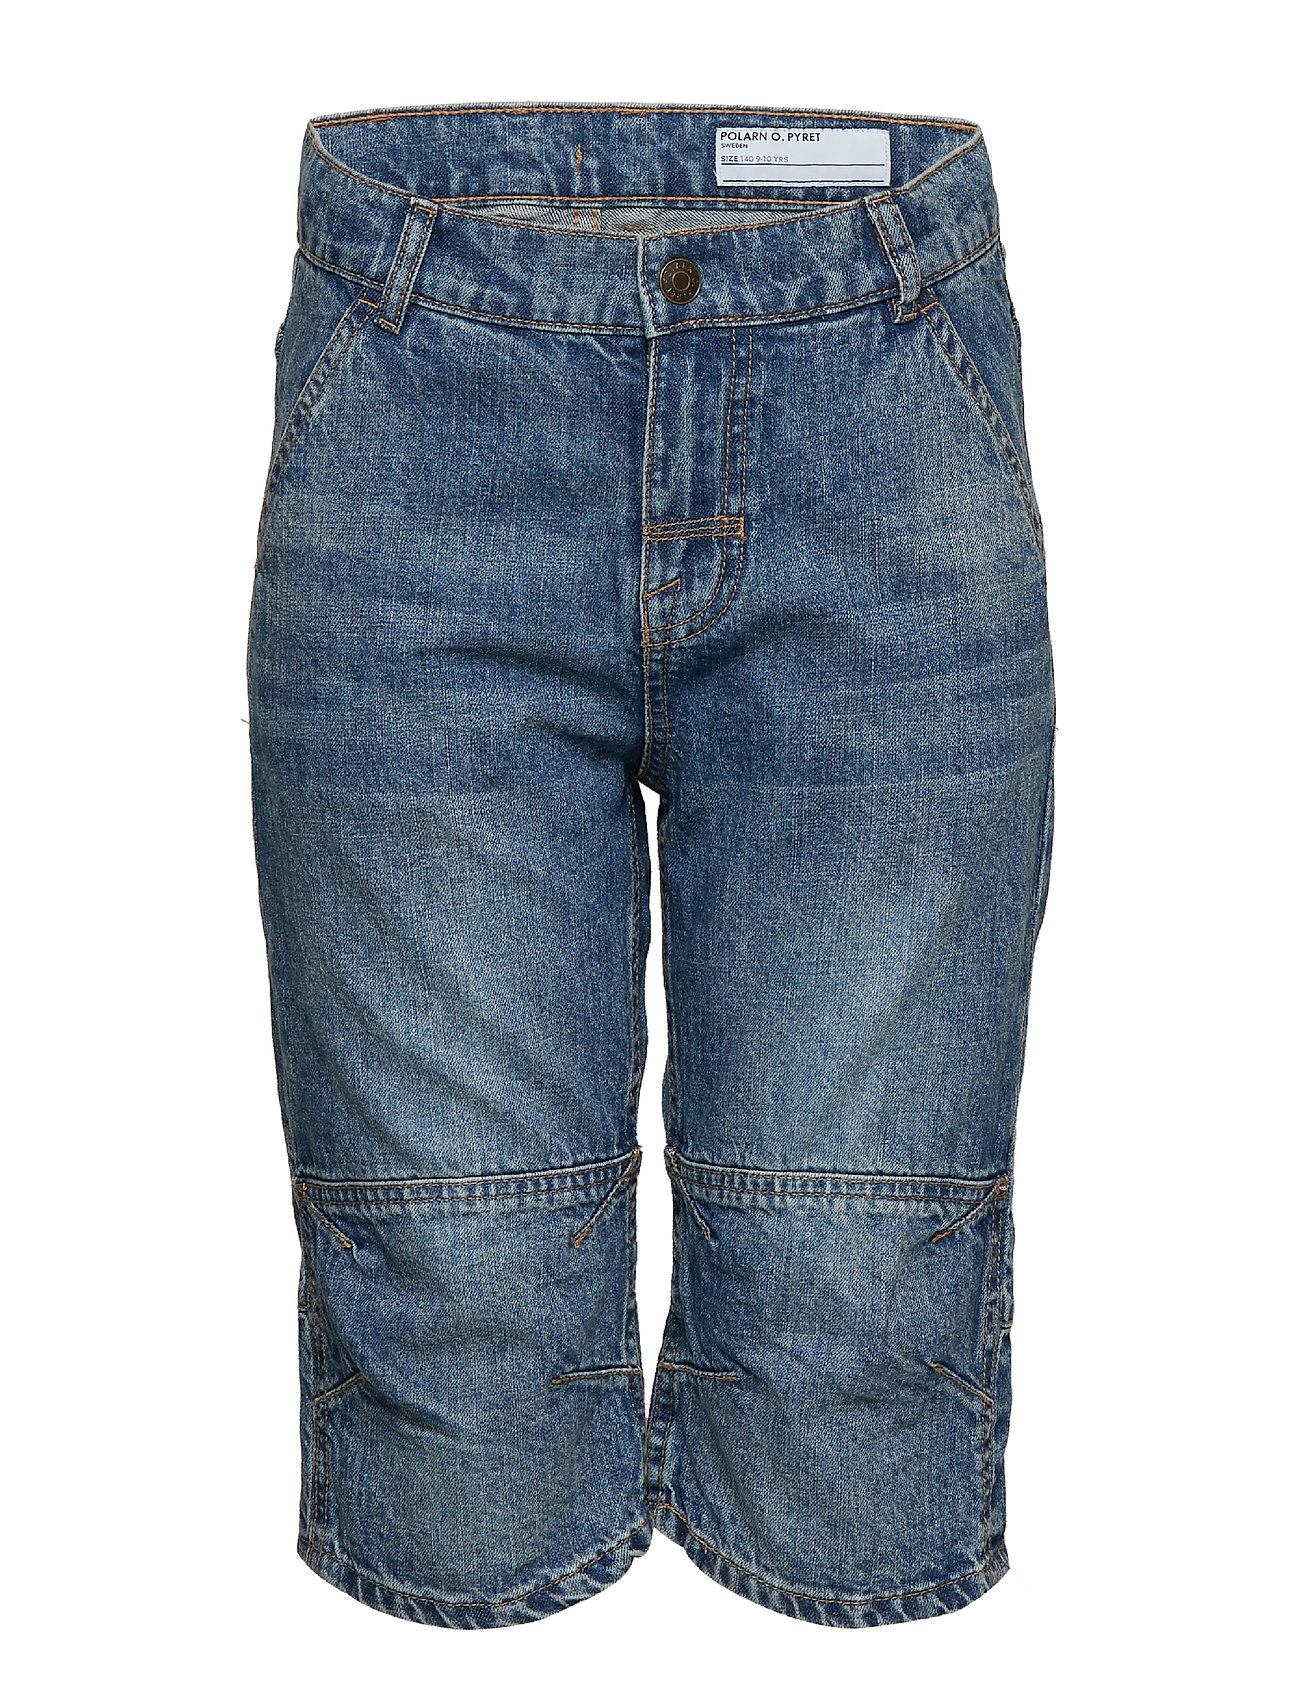 ac7db5c06eda Shorts Denim School (Light Denim) (32.90 €) - Polarn O. Pyret ...